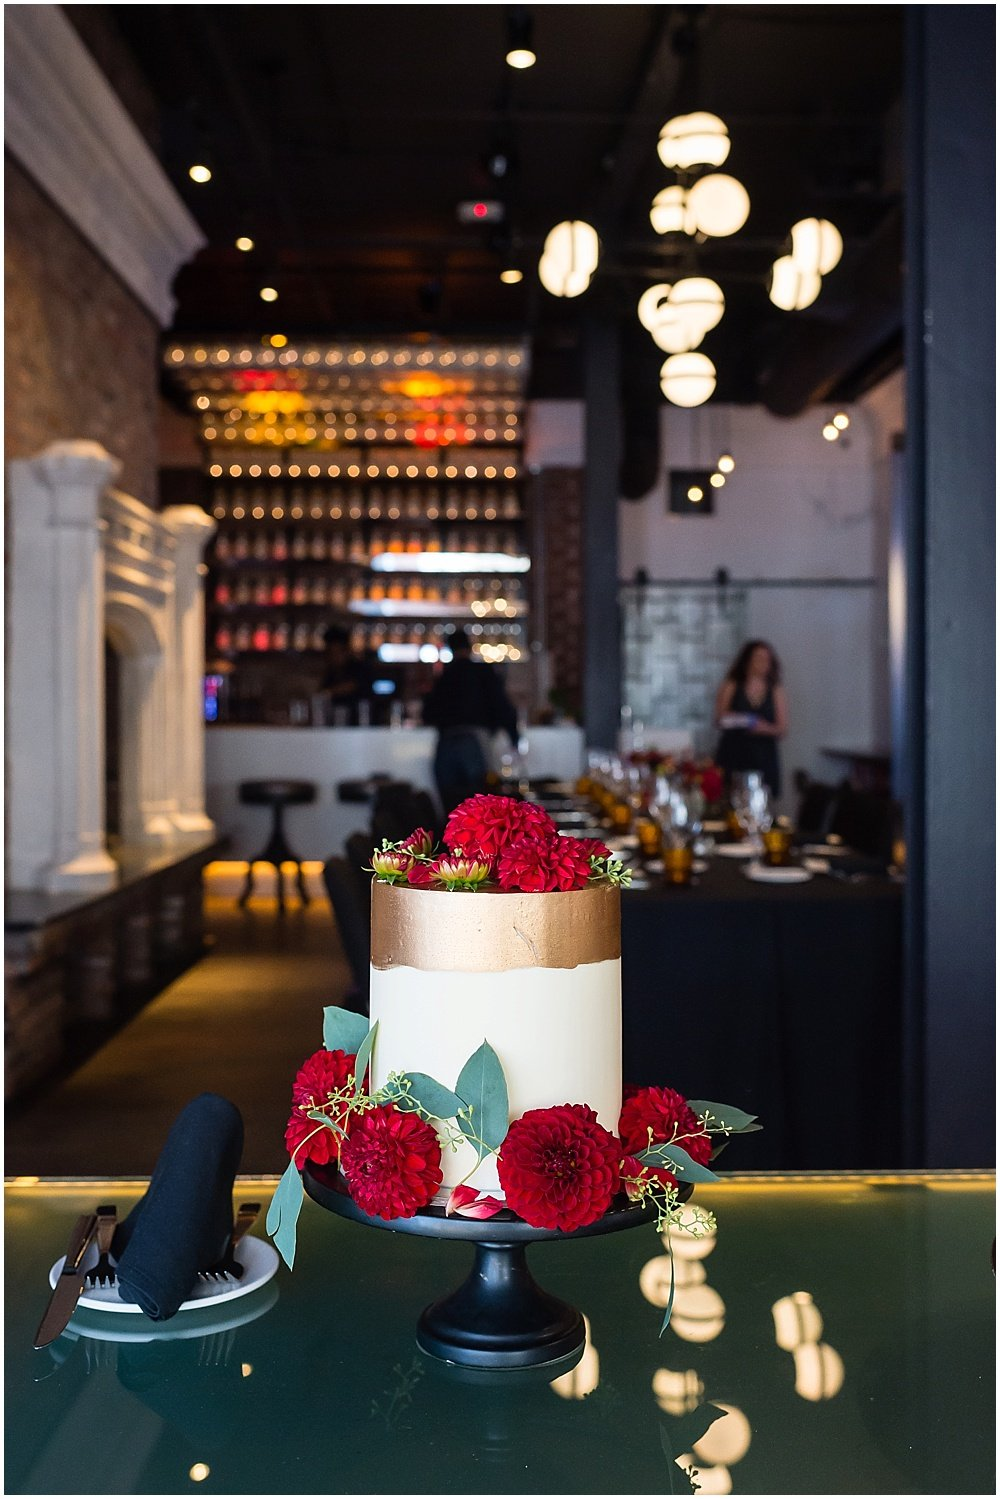 Cake shot after San Francisco City Hall Wedding at Hotel Zeppelin